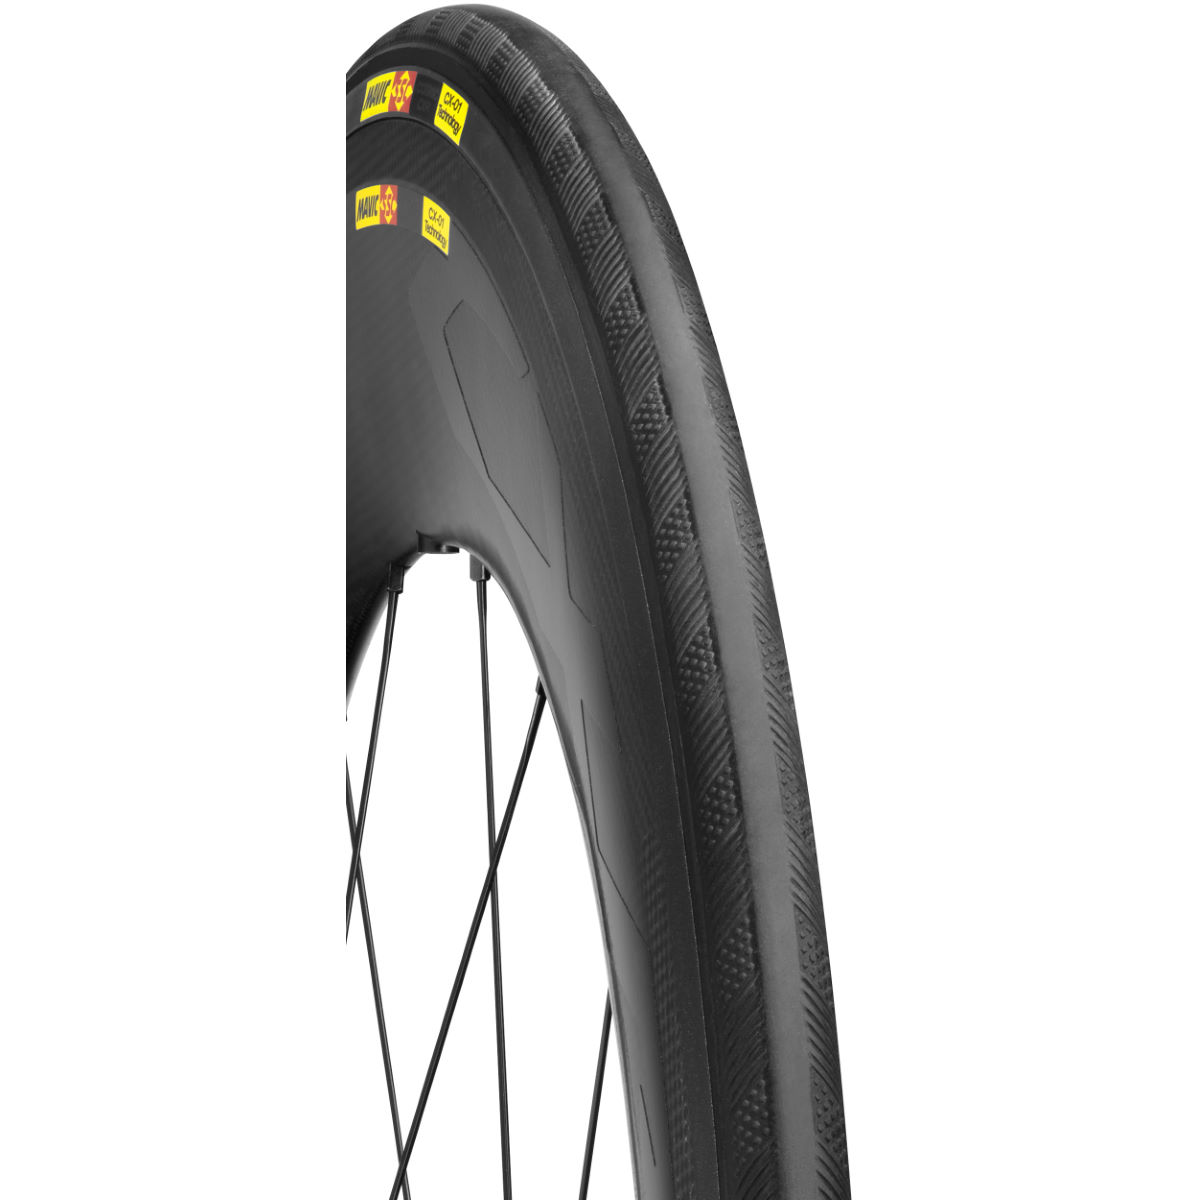 Boyau Mavic CXR Ultimate PowerLink - 700 x 23c Noir Pneus à boyaux de route